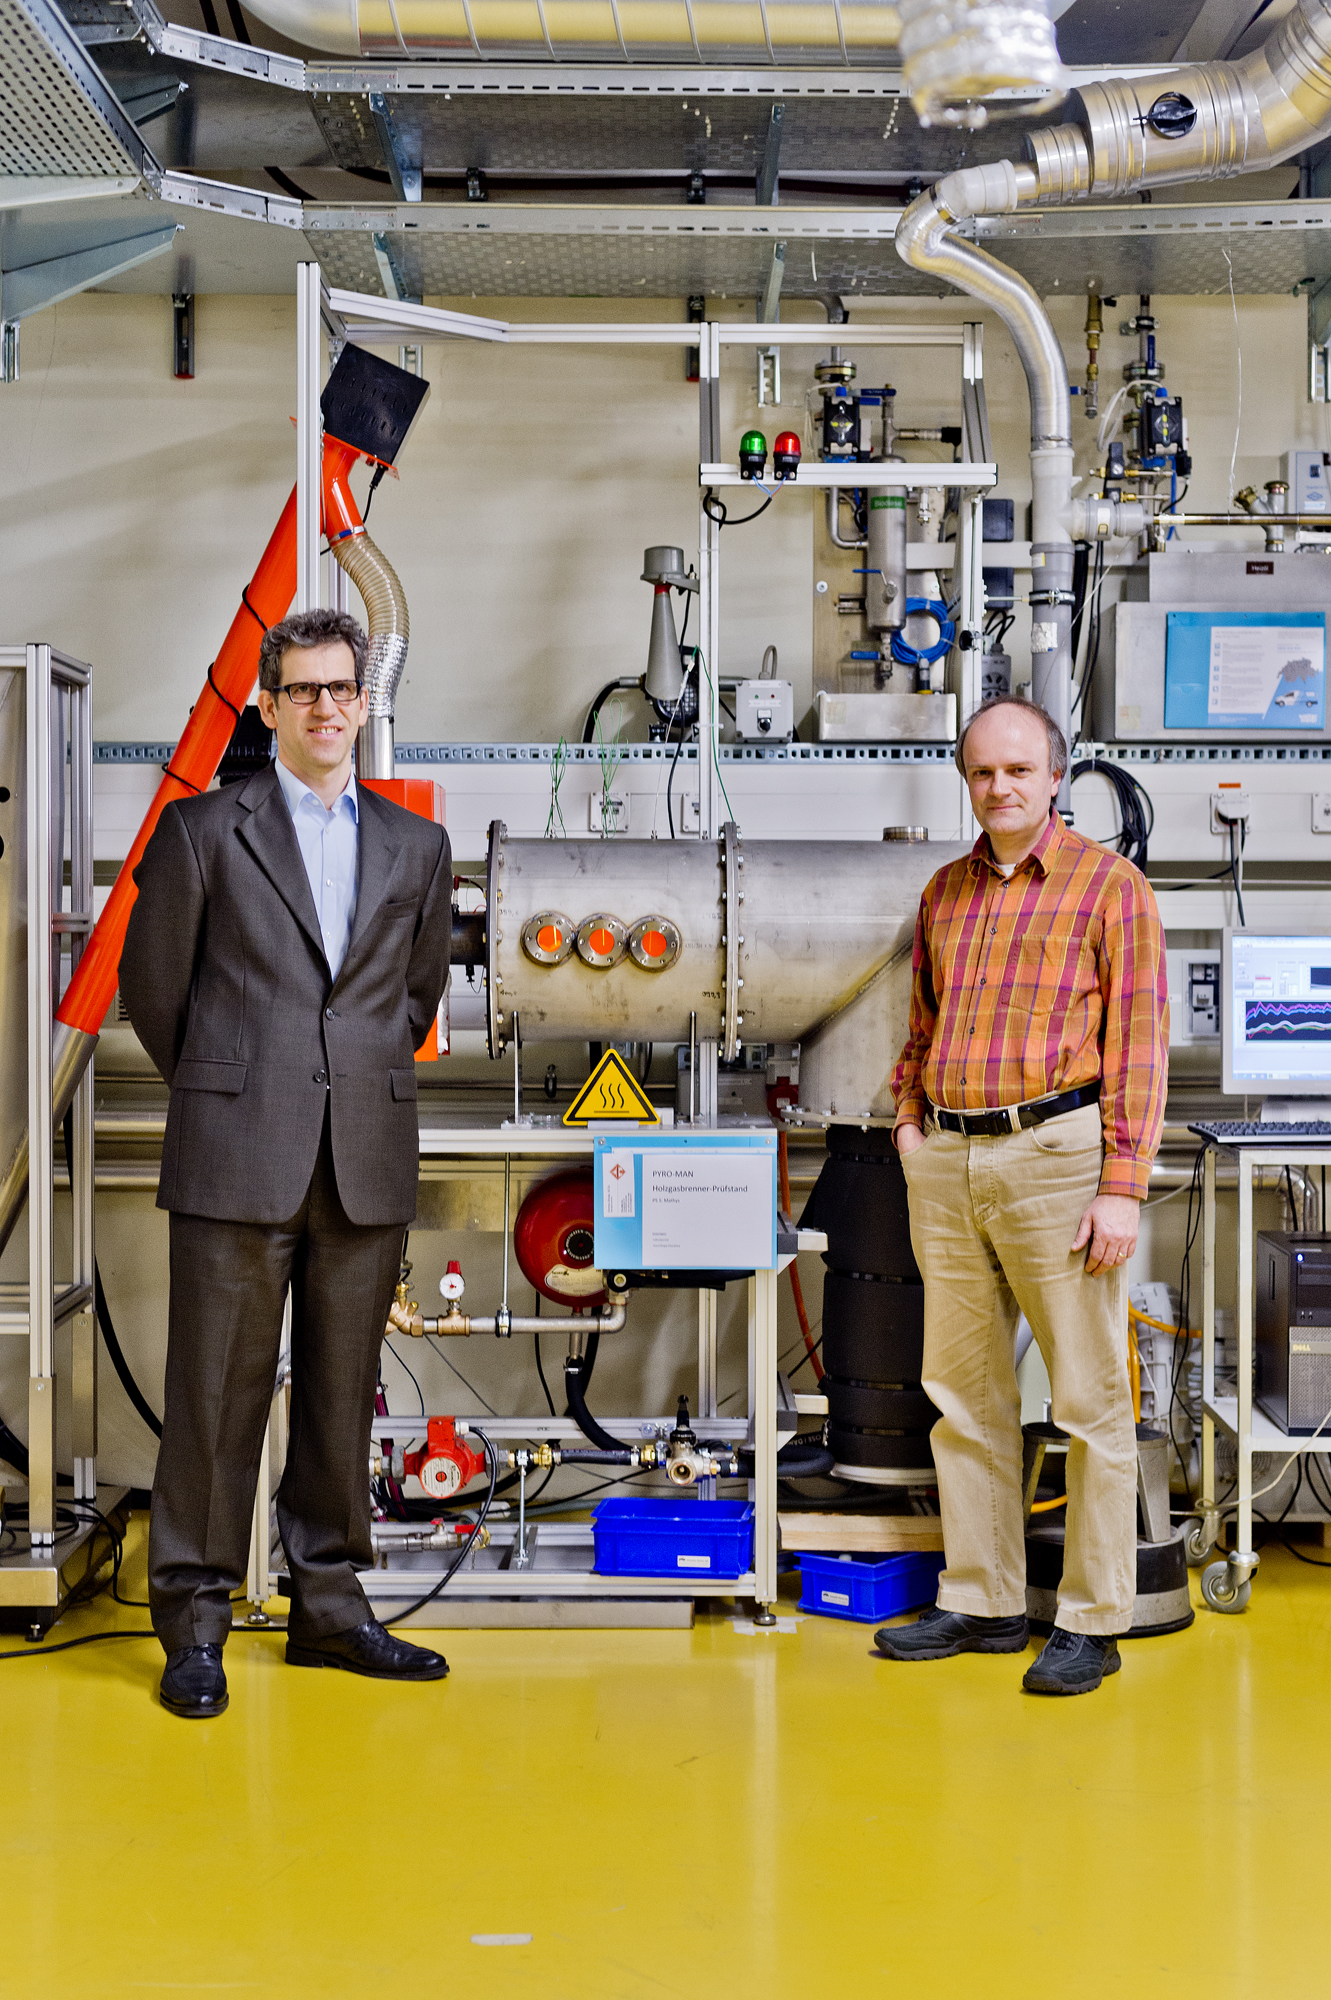 Pictured in front of the new wood gas burner test rig in the laboratory building of the School of Engineering of the University of Applied Sciences FHNW in Brugg-Windisch are (from left) Prof. Dr. Timothy Griffin, Head of the Institute of Biomass and Resource Efficiency (IBRE), and Prof. Dr. Frédéric Vogel, Deputy Head of the IBRE and Head of the Catalytic Process Engineering Group at the PSI. (picture: Emanuel Freudiger / AZ Media)